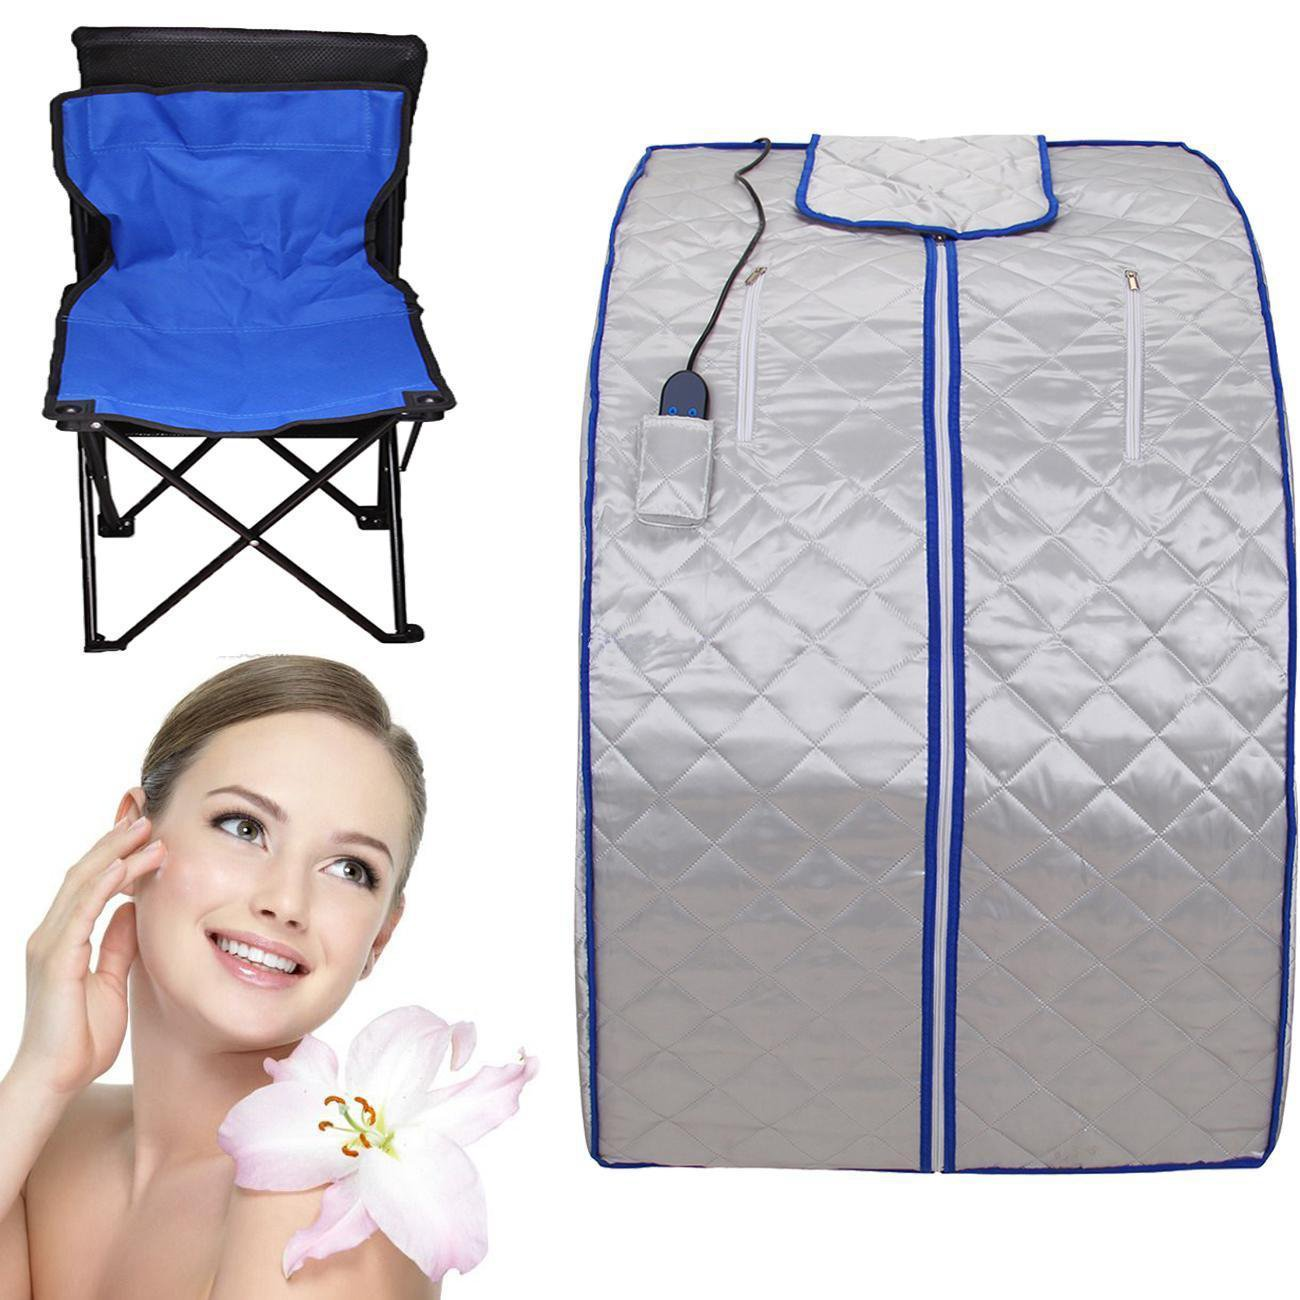 For Sauna Portable Far Infrared Spa Sauna Weight Loss Negative Ion Detox Therapy Personal Fir Infrared